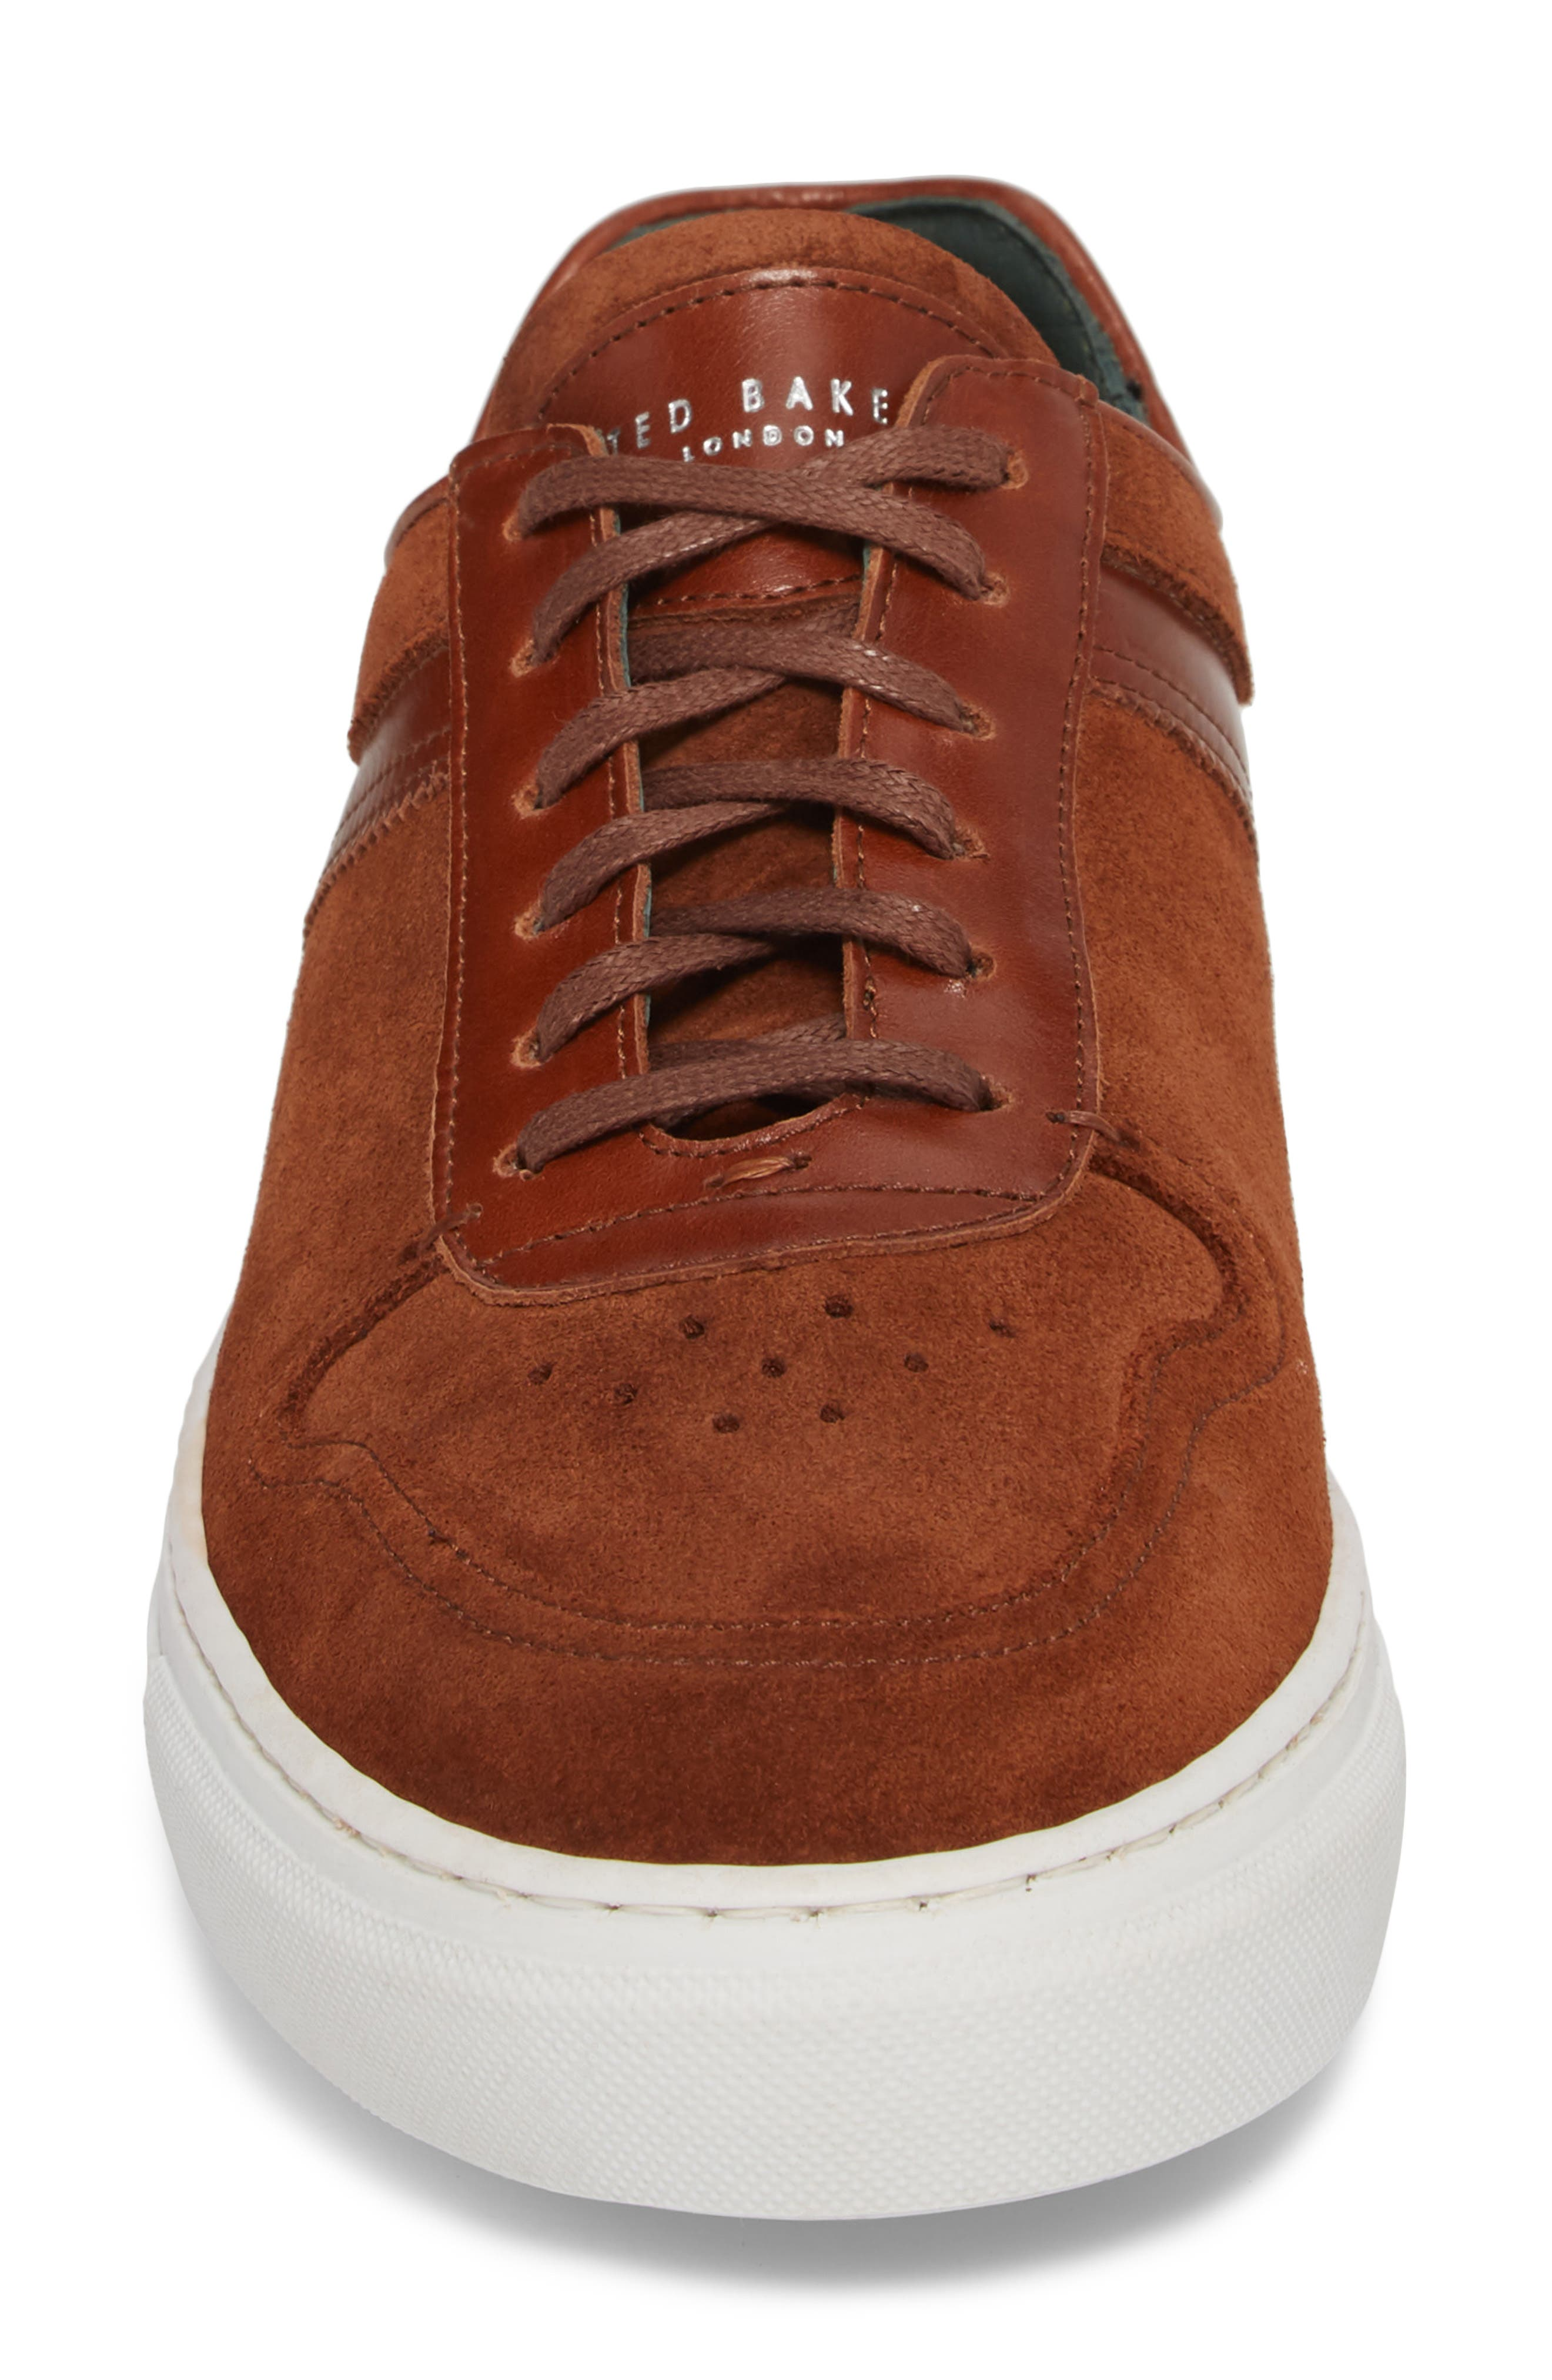 Burall Sneaker,                             Alternate thumbnail 6, color,                             Dark Tan Suede